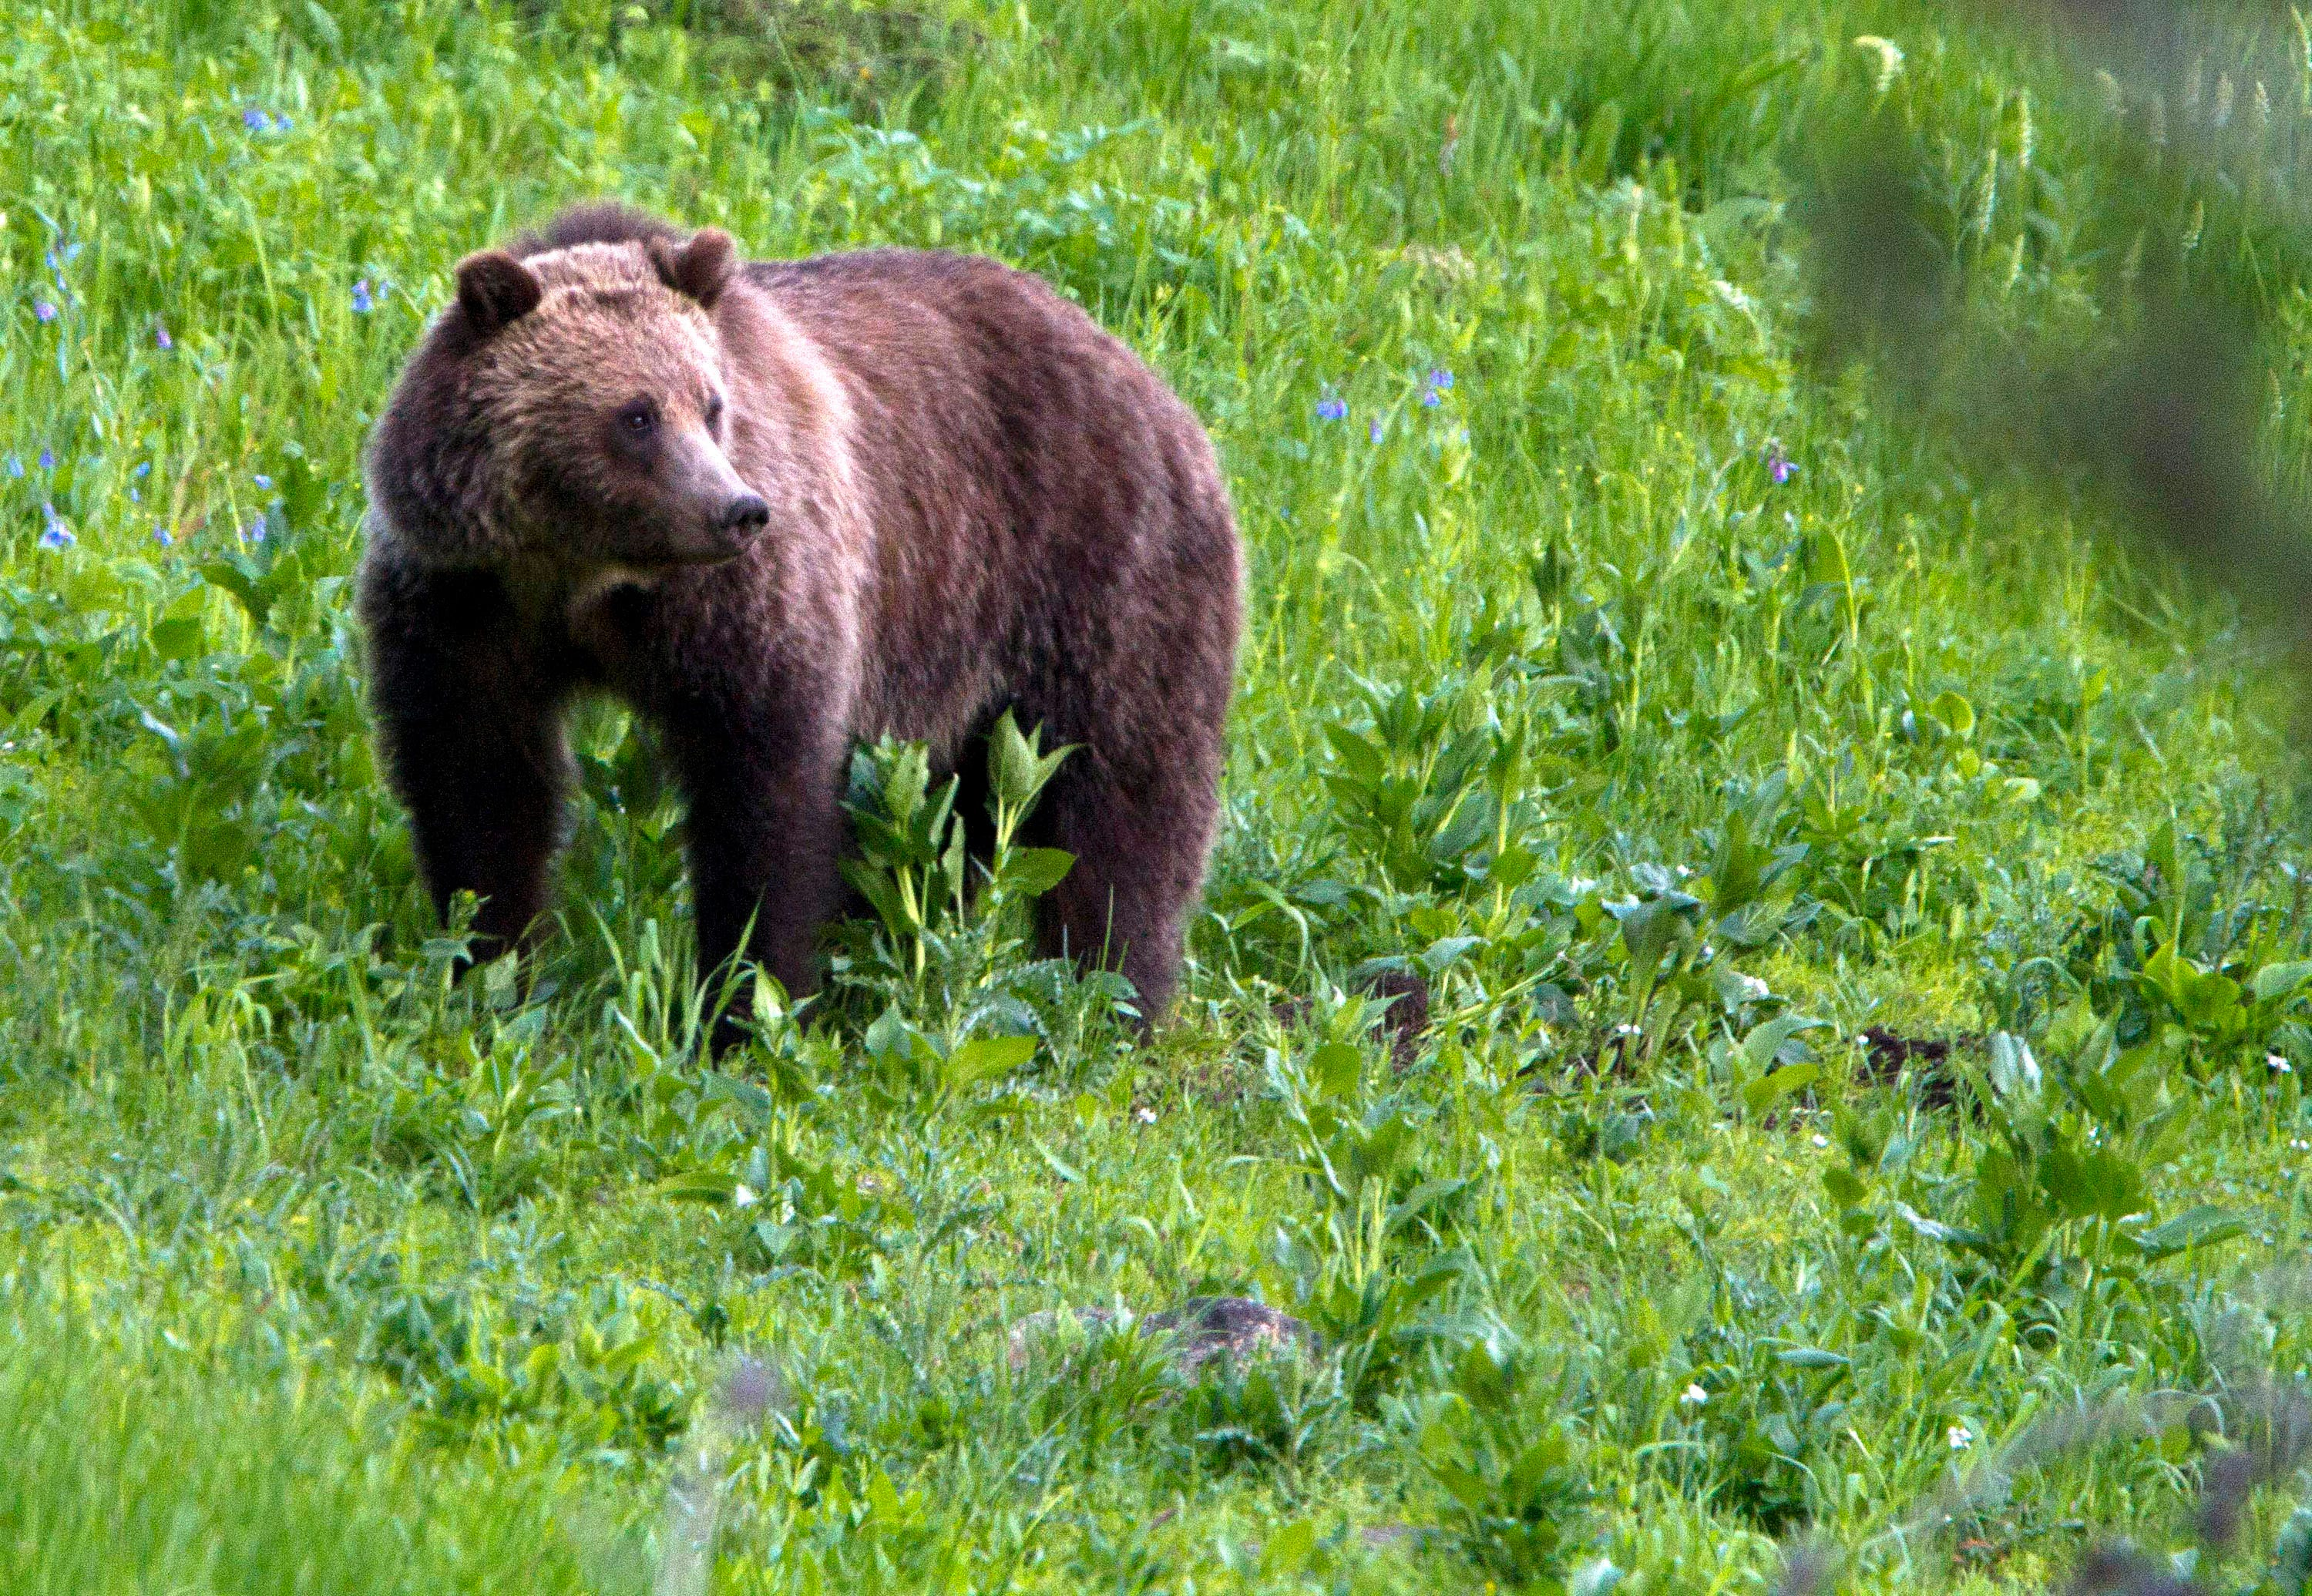 Yellowstone bear runs at woman approaching with her phone. Now, park rangers are looking for her.